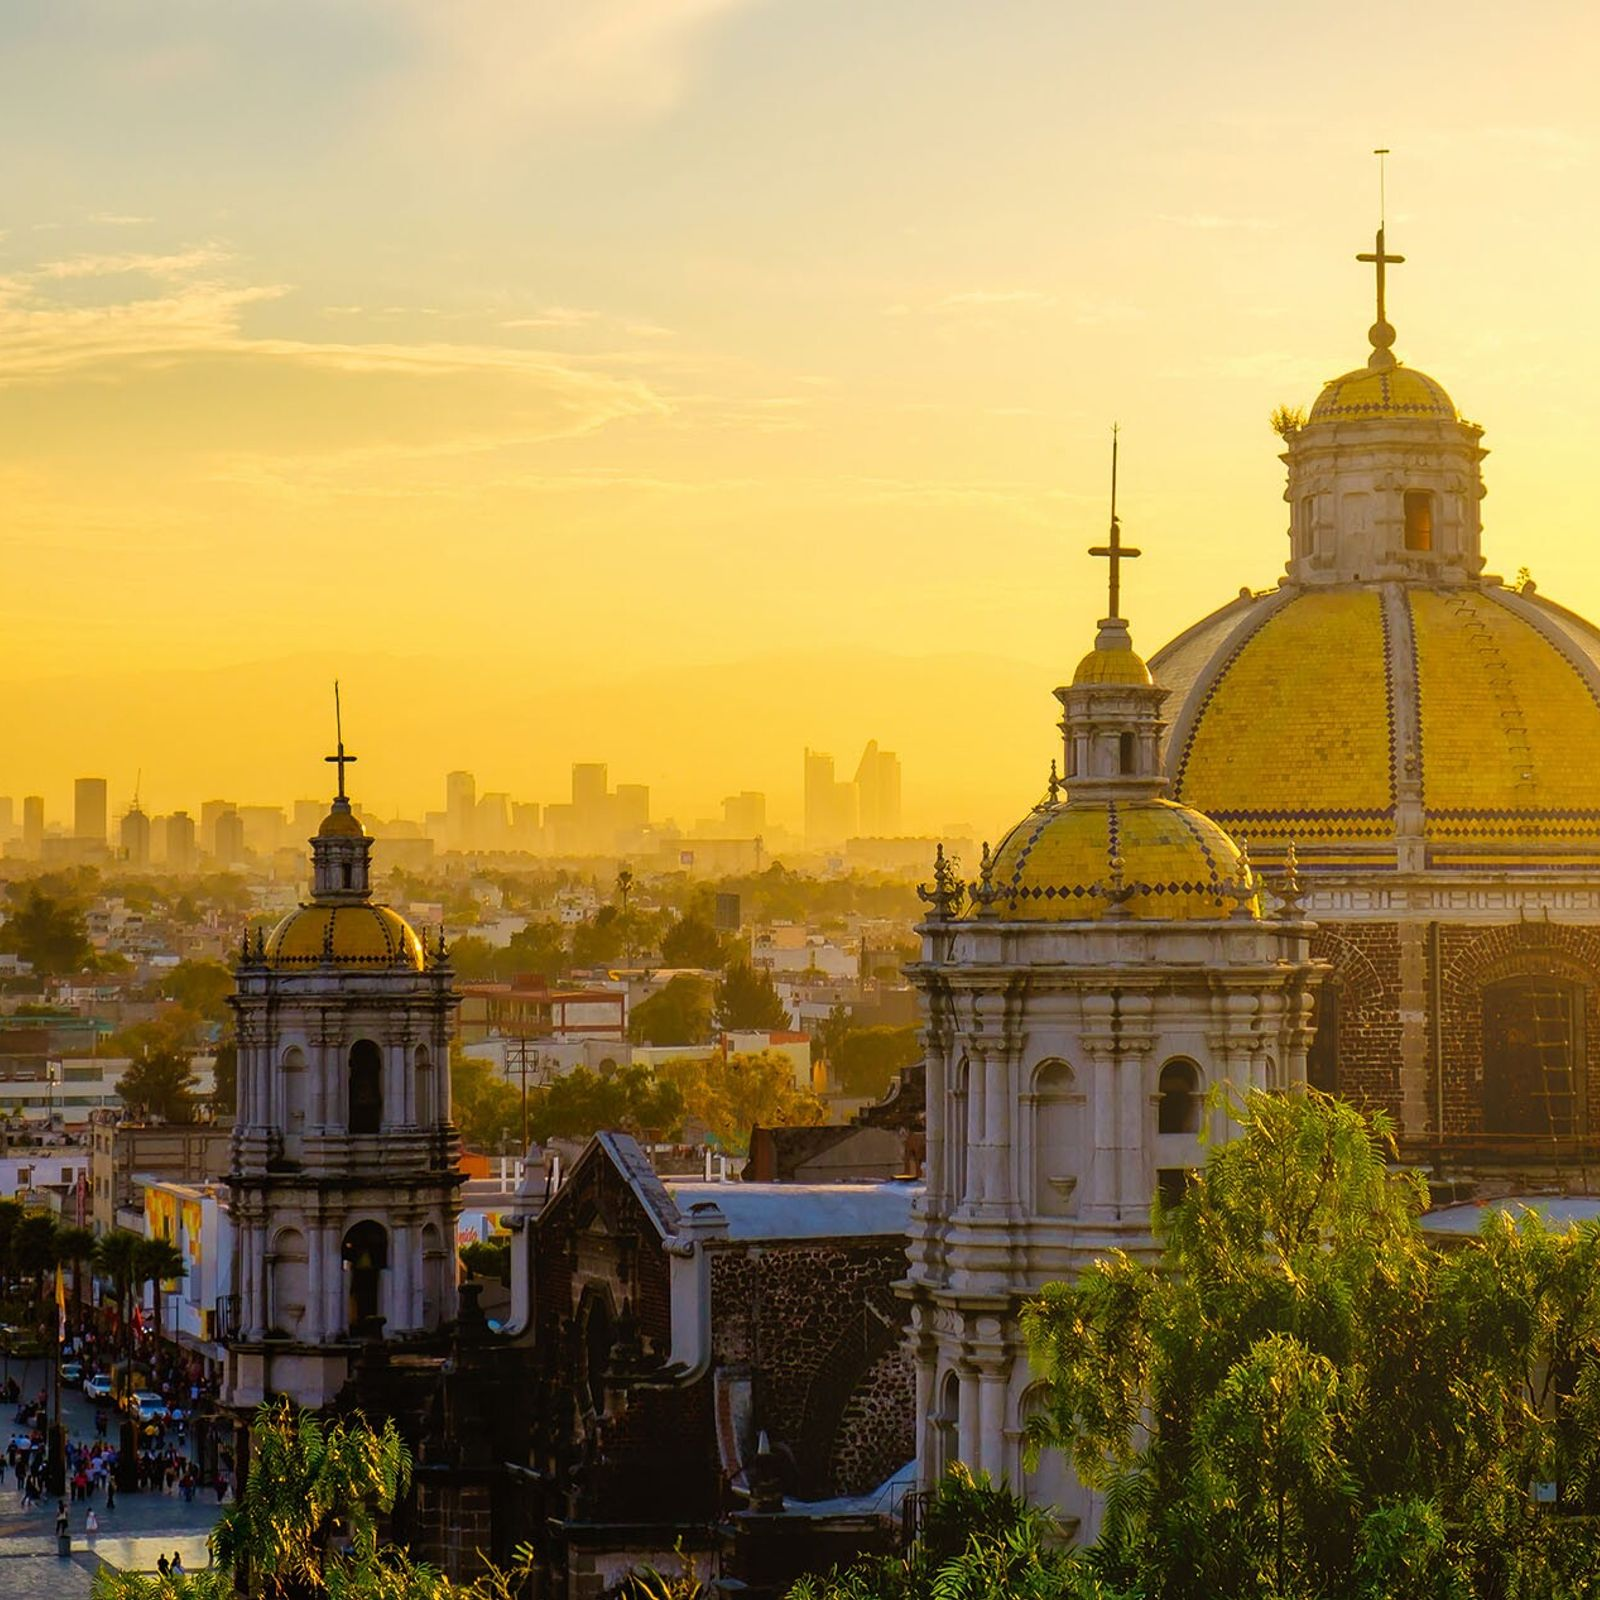 Sunset at the Basilica of Guadalupe, with Mexico City's skyline beyond.